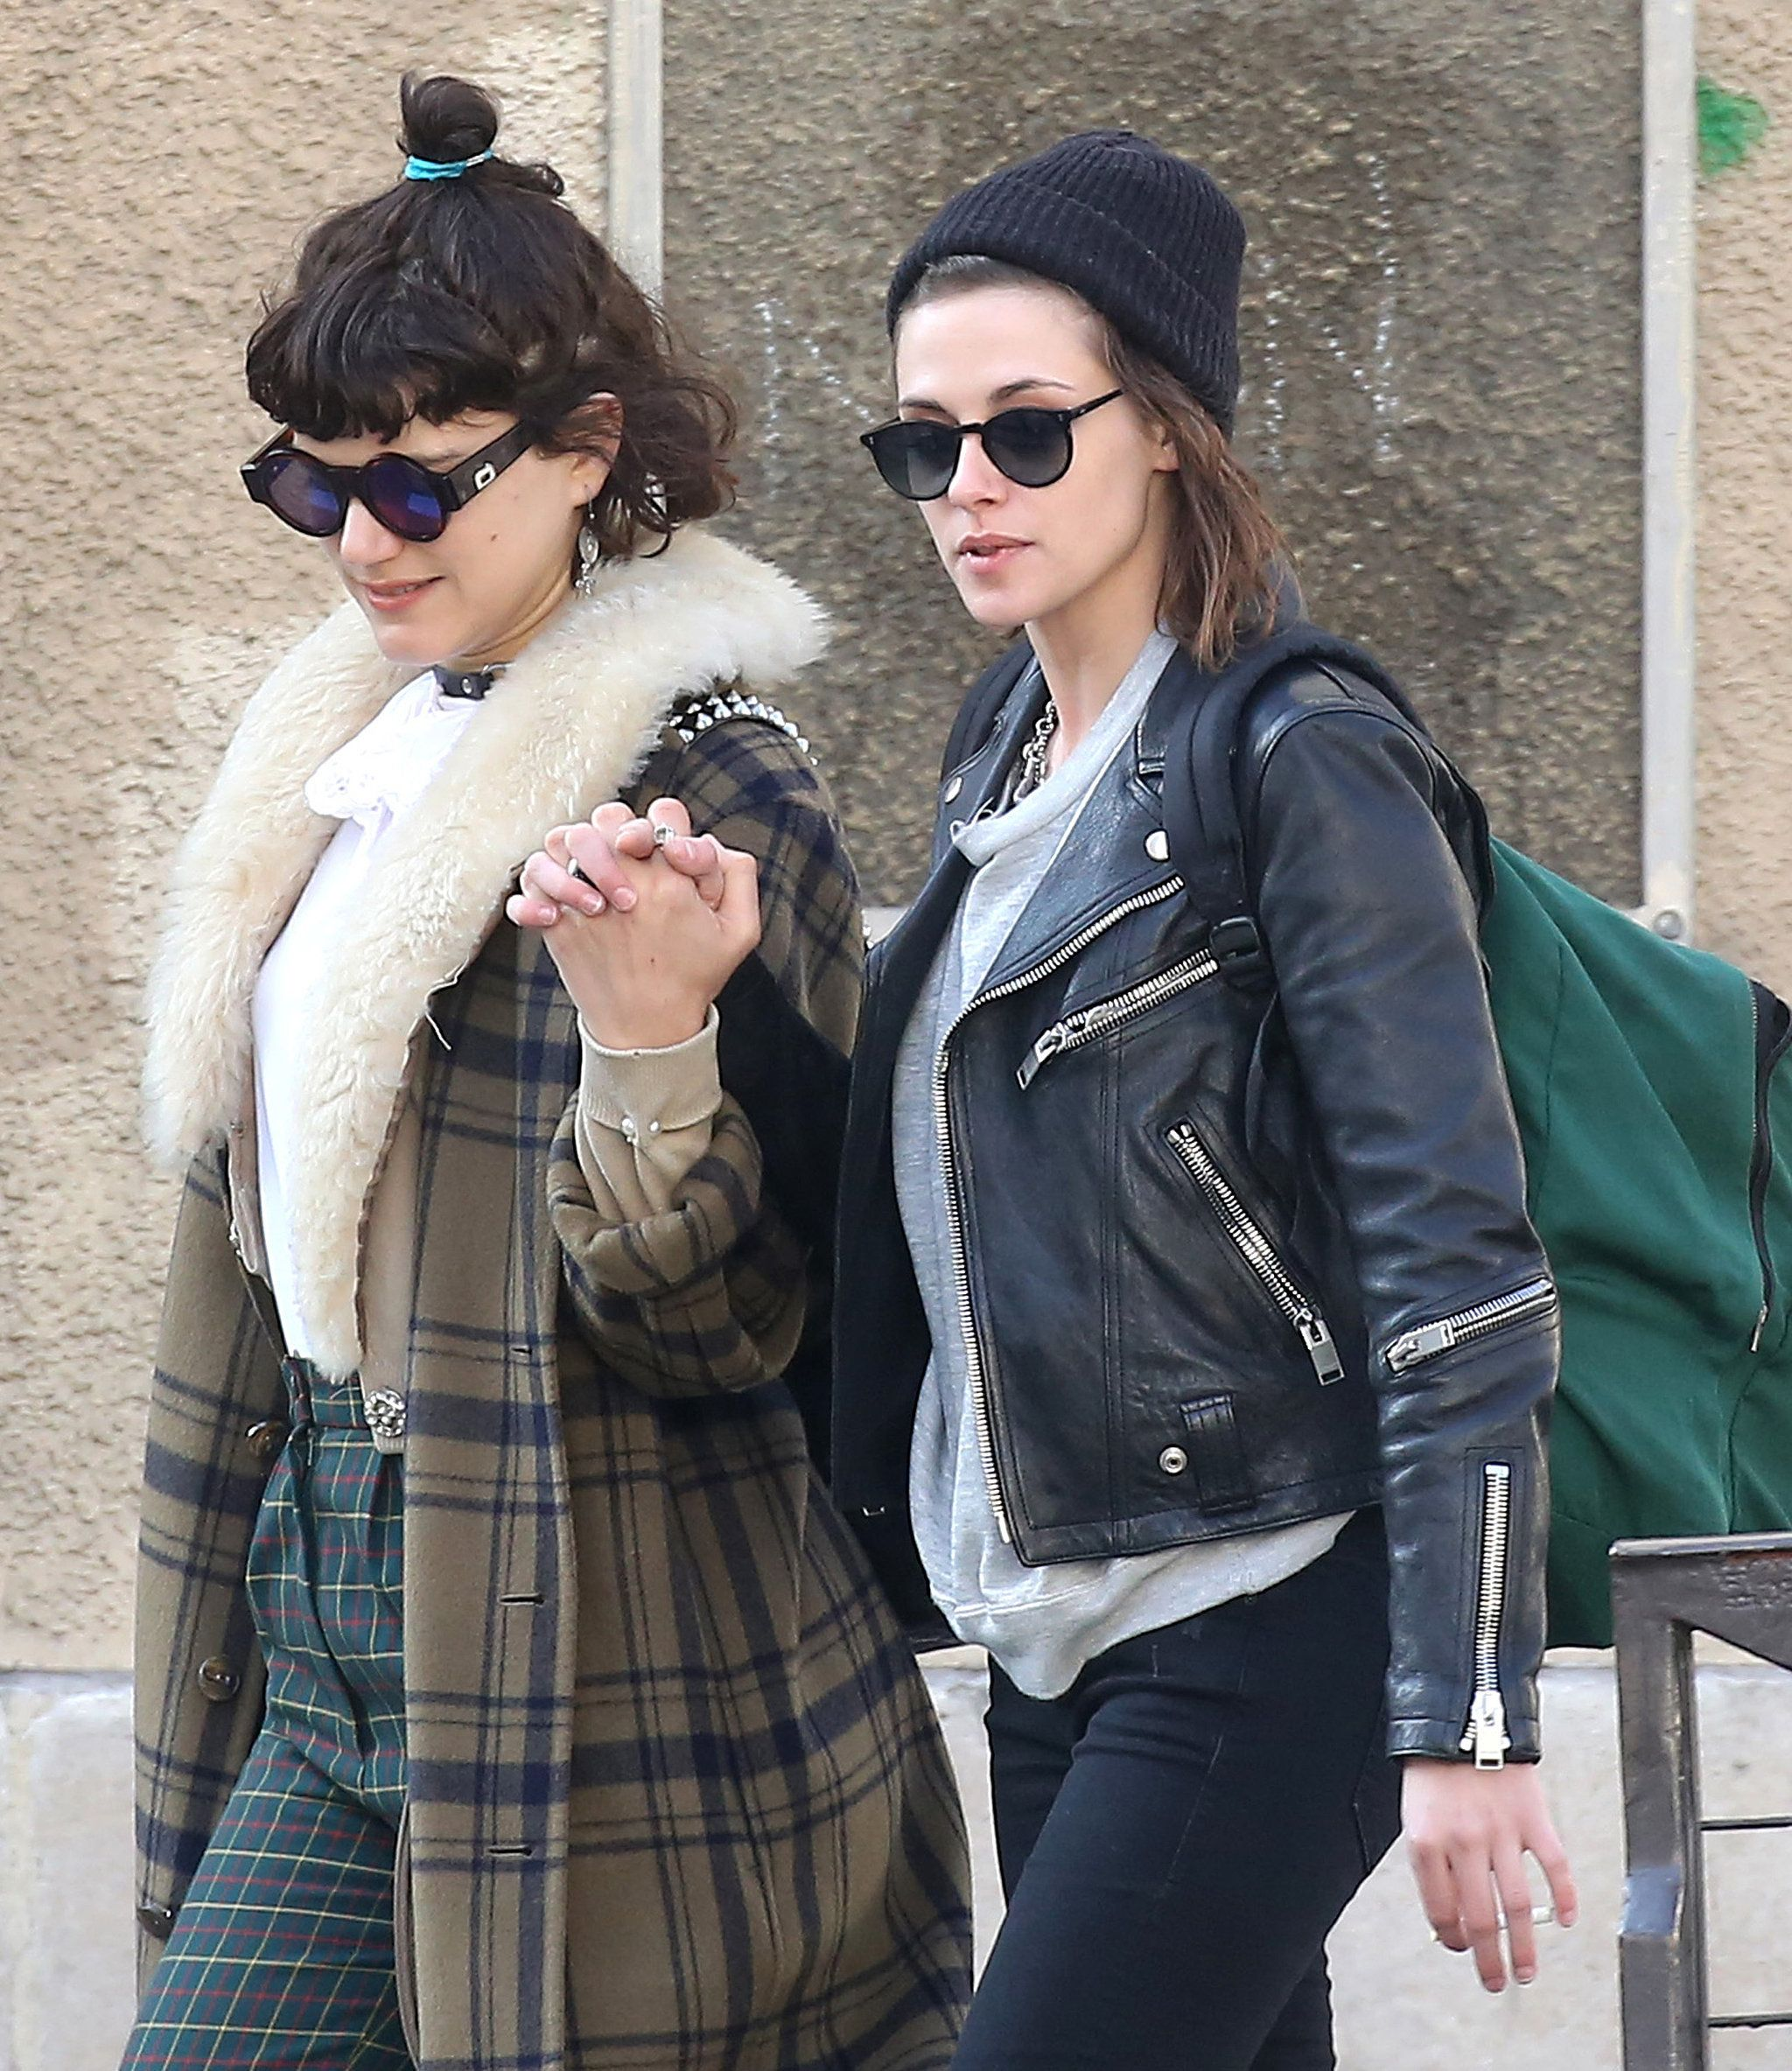 Kristen Stewart and Soko Share a Sweet Kiss During Their